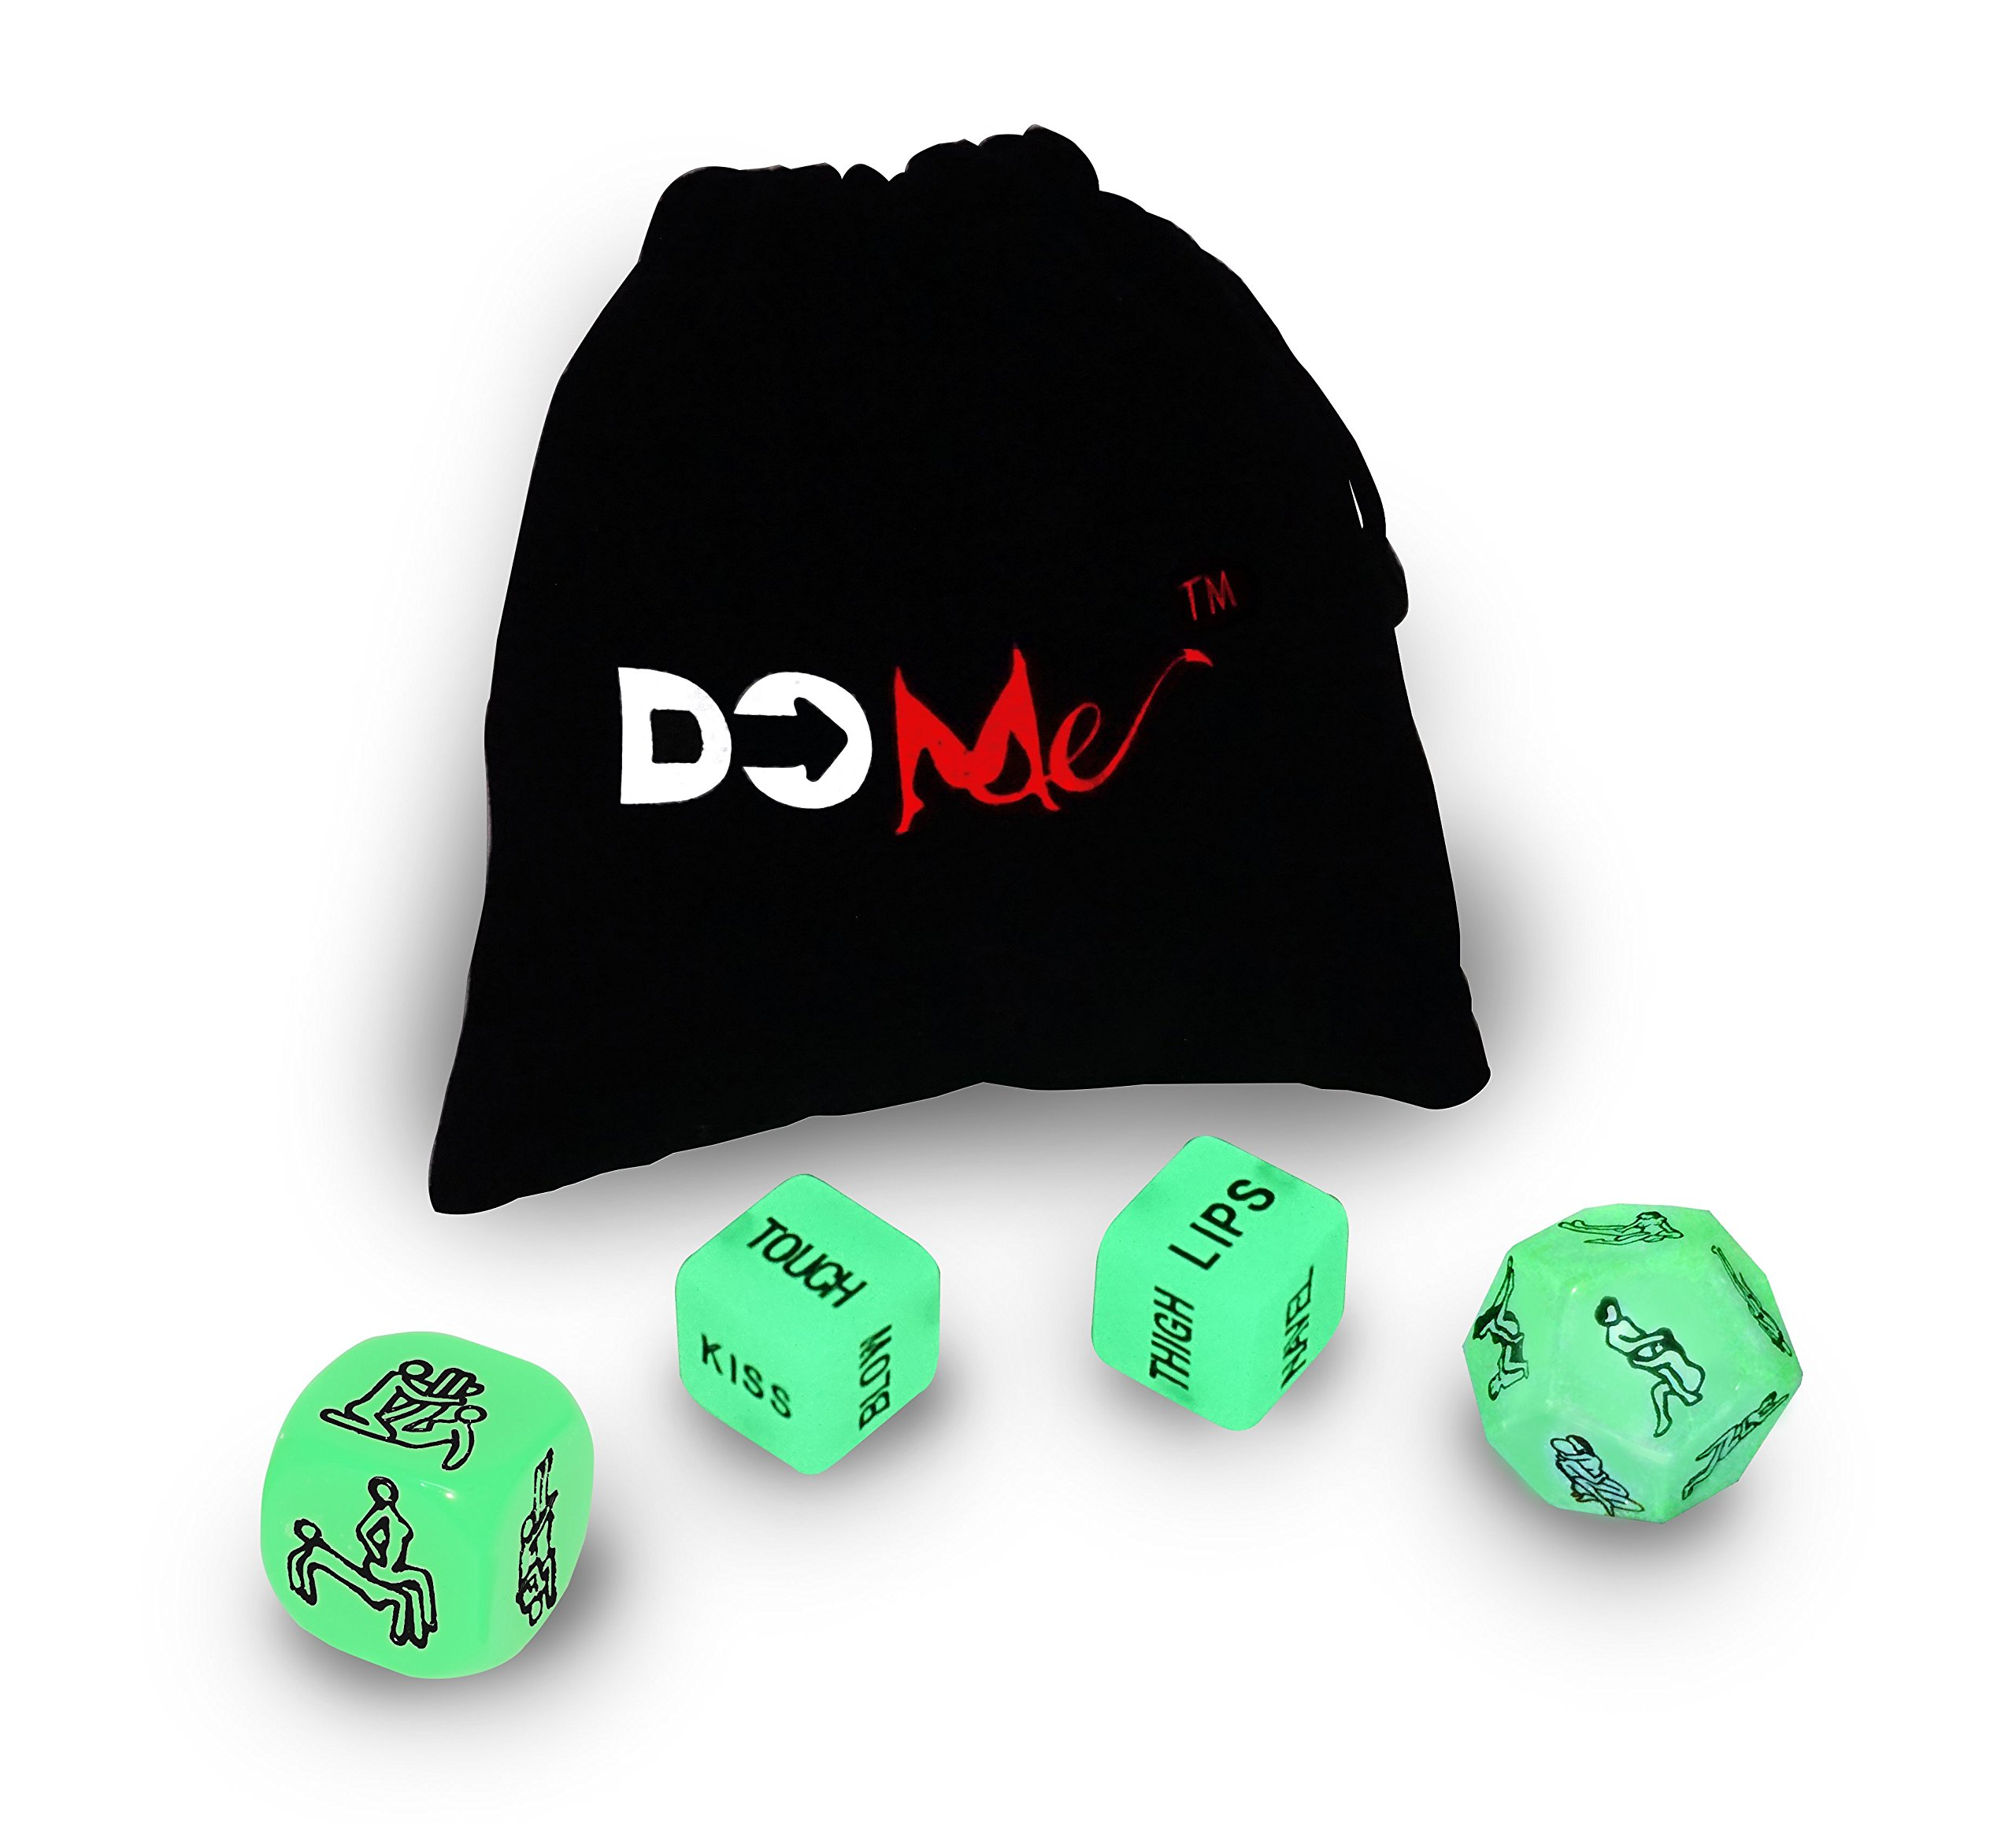 New! Dice for Partners - 2 Action Dice + 2 Position Dice in a Black Velvet Pouch - Glow-in-The-Dark